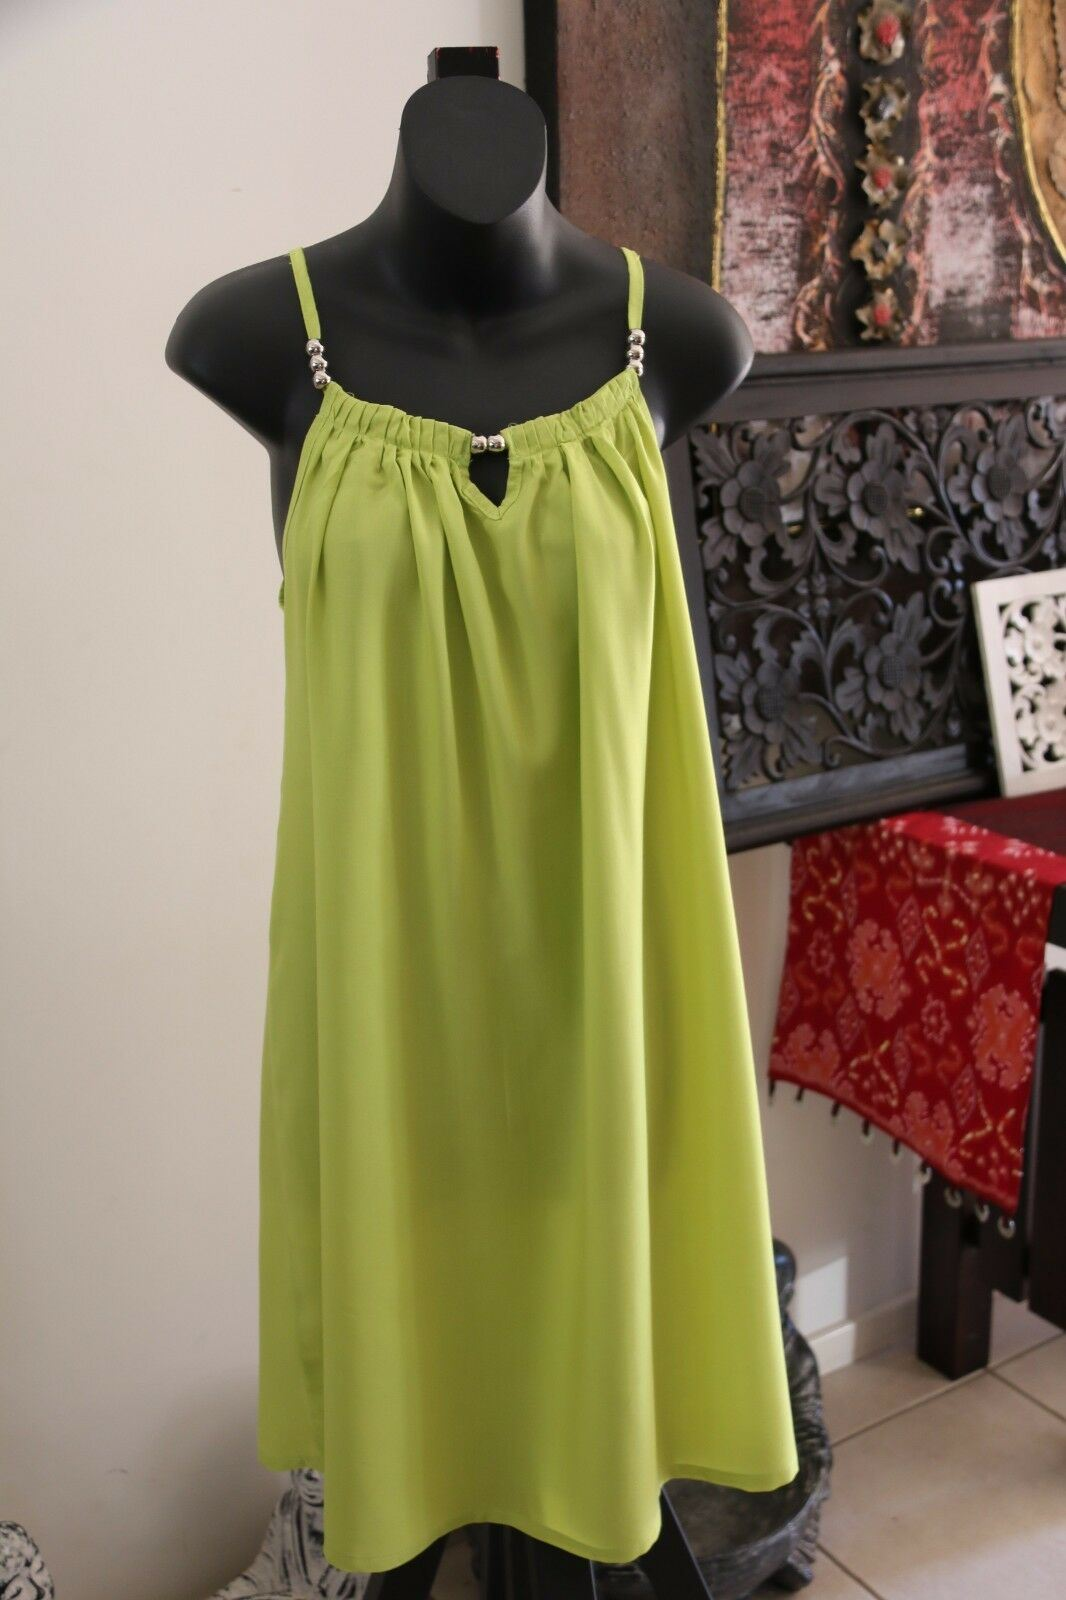 NEW Ladies Cotton Bali Knee Length Dress / One Size / Cool Summer Casual Dress